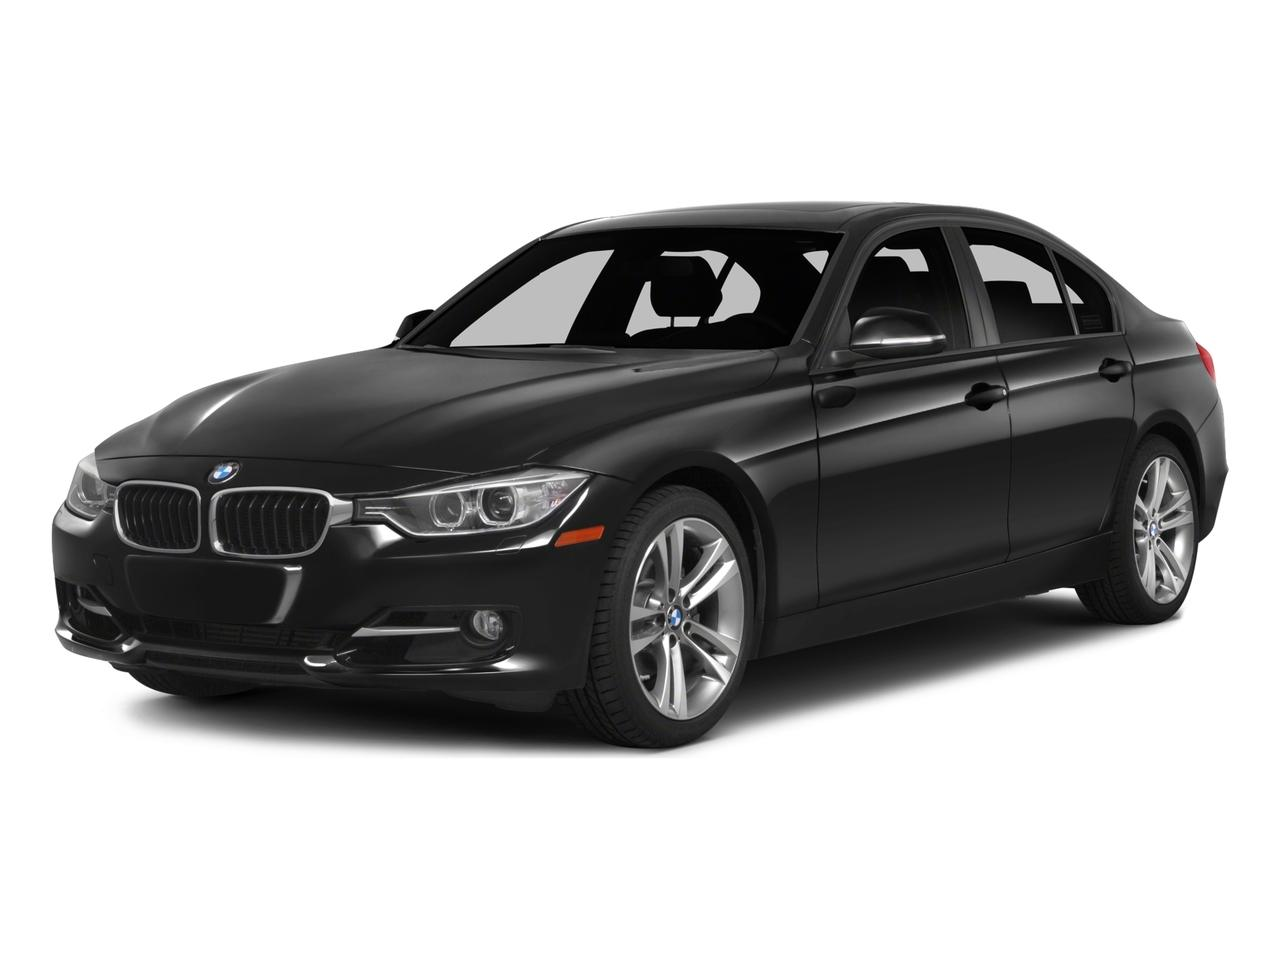 2015 BMW 328i Vehicle Photo in Murrieta, CA 92562